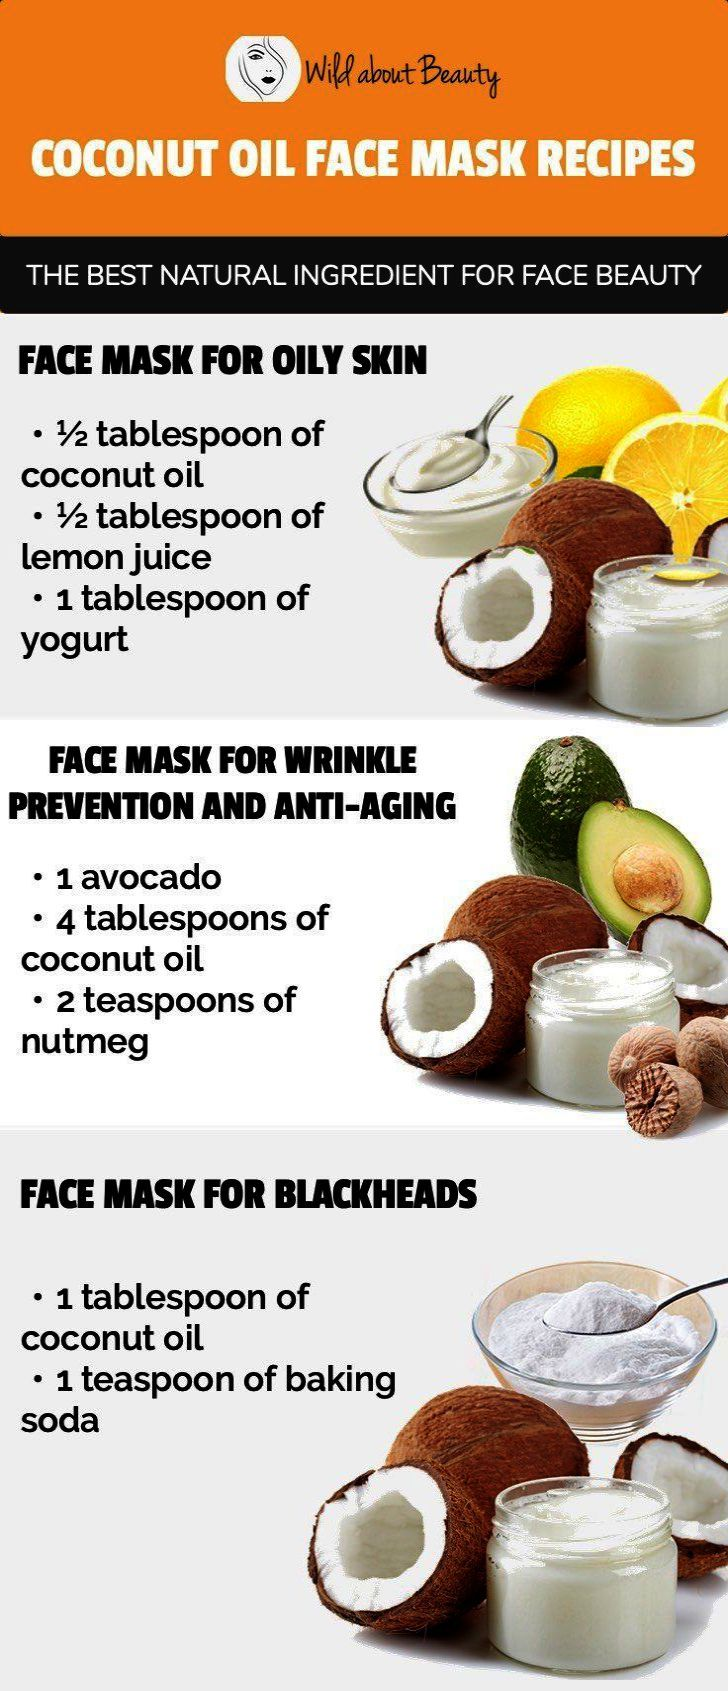 Skincare Routine Quotes also Skincare In Fridge considering Skin Care Products S…